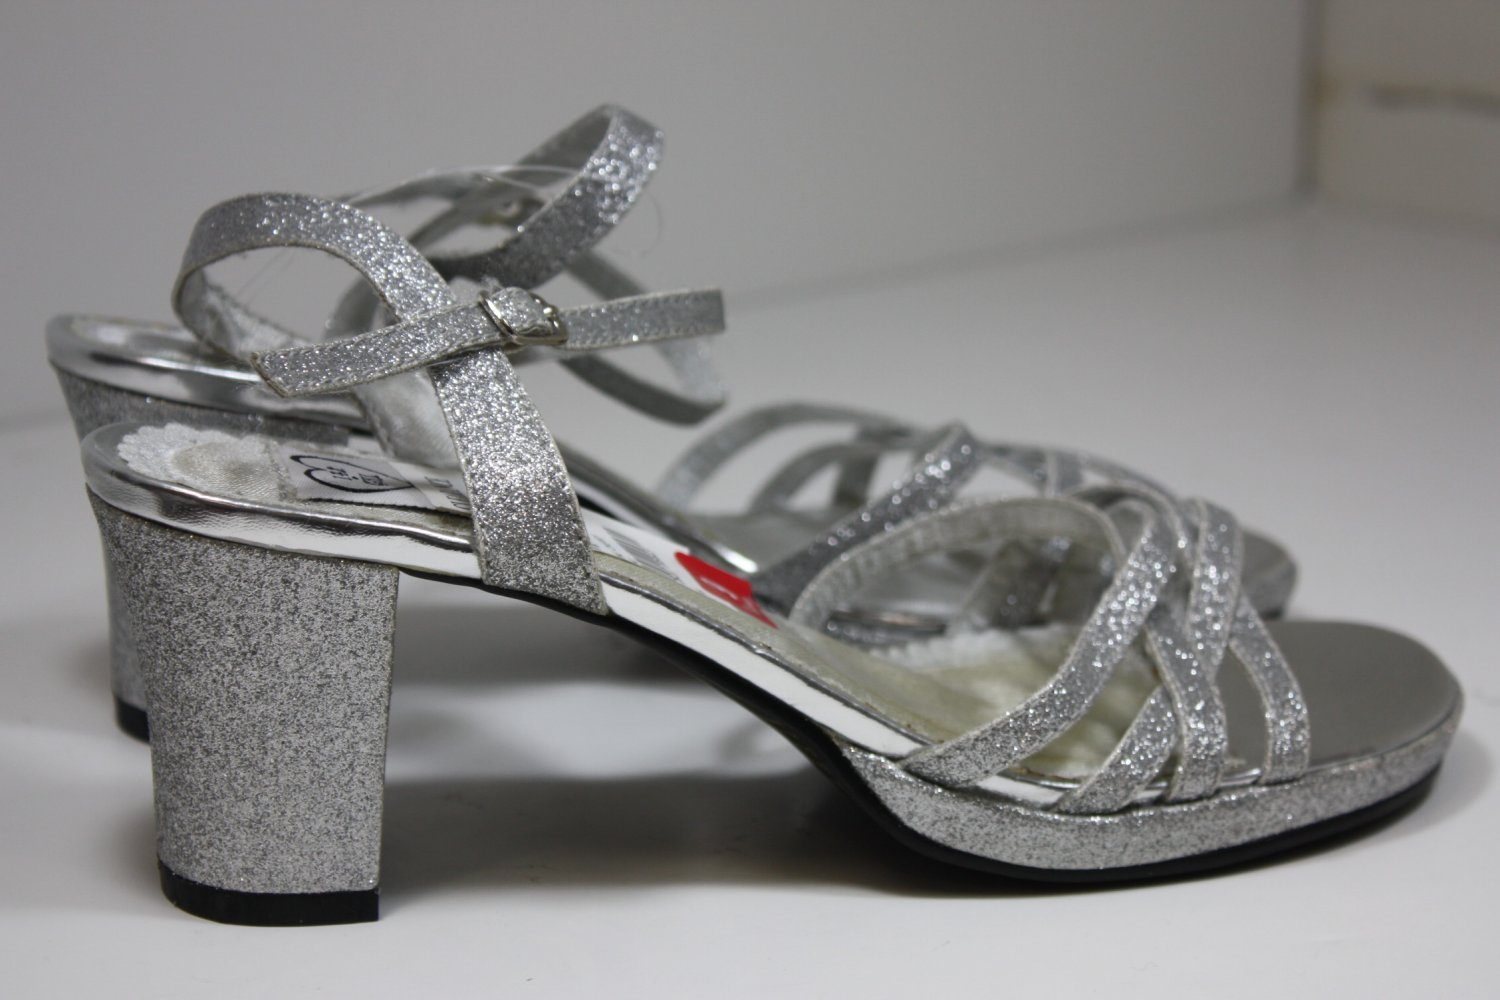 143 GIRL BING CHERRY Heels Silver Shoes US 9 $49.95